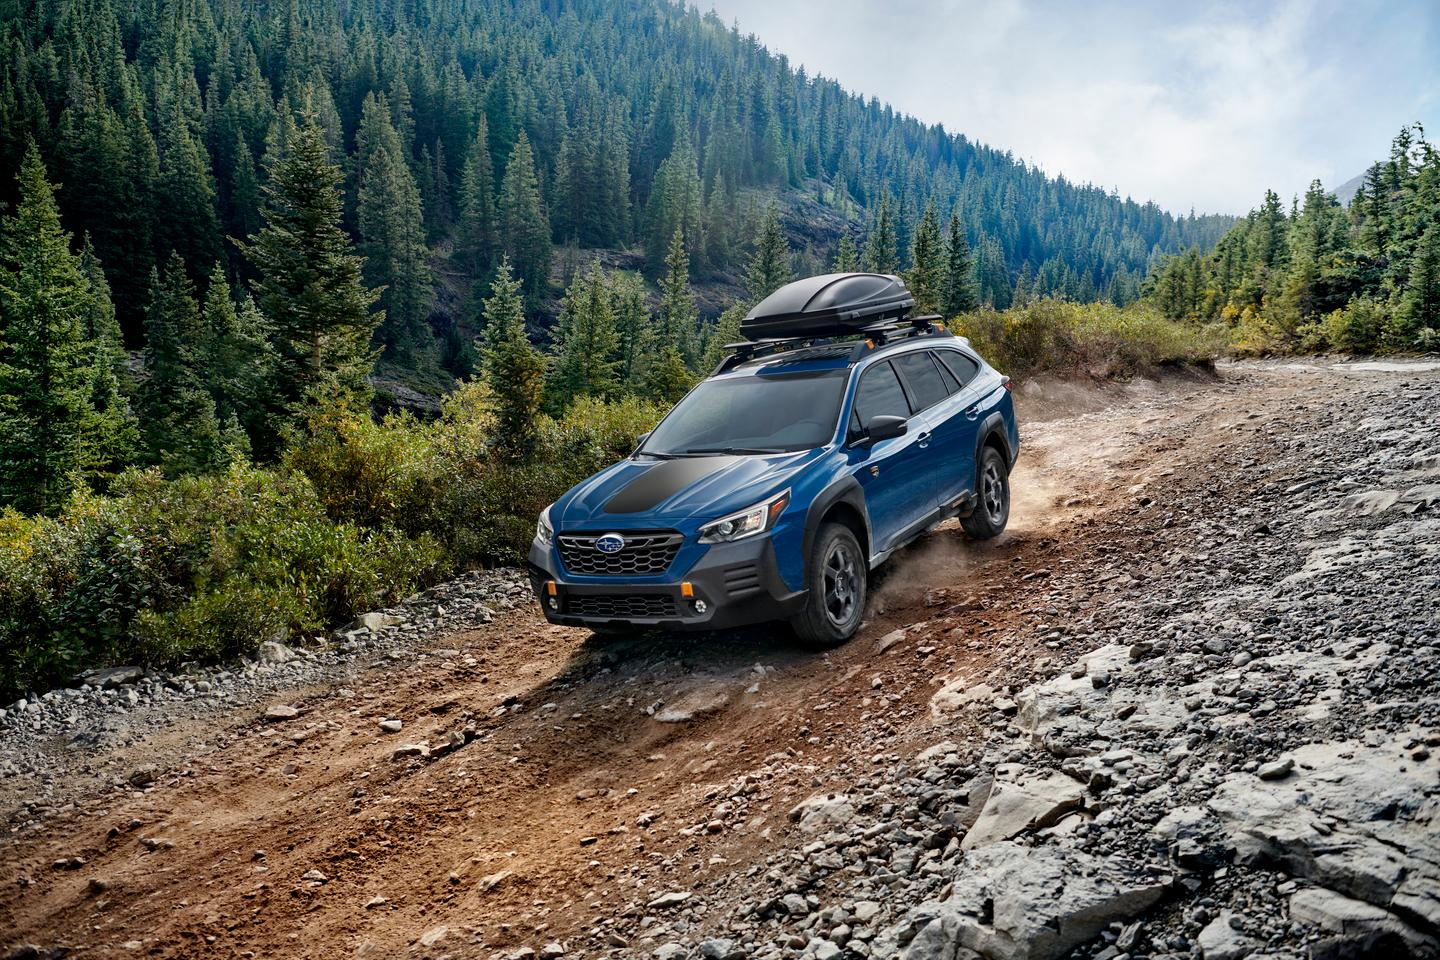 A one-inch lift and several Outlander Wilderness-specific additions are found on this new model from Subaru